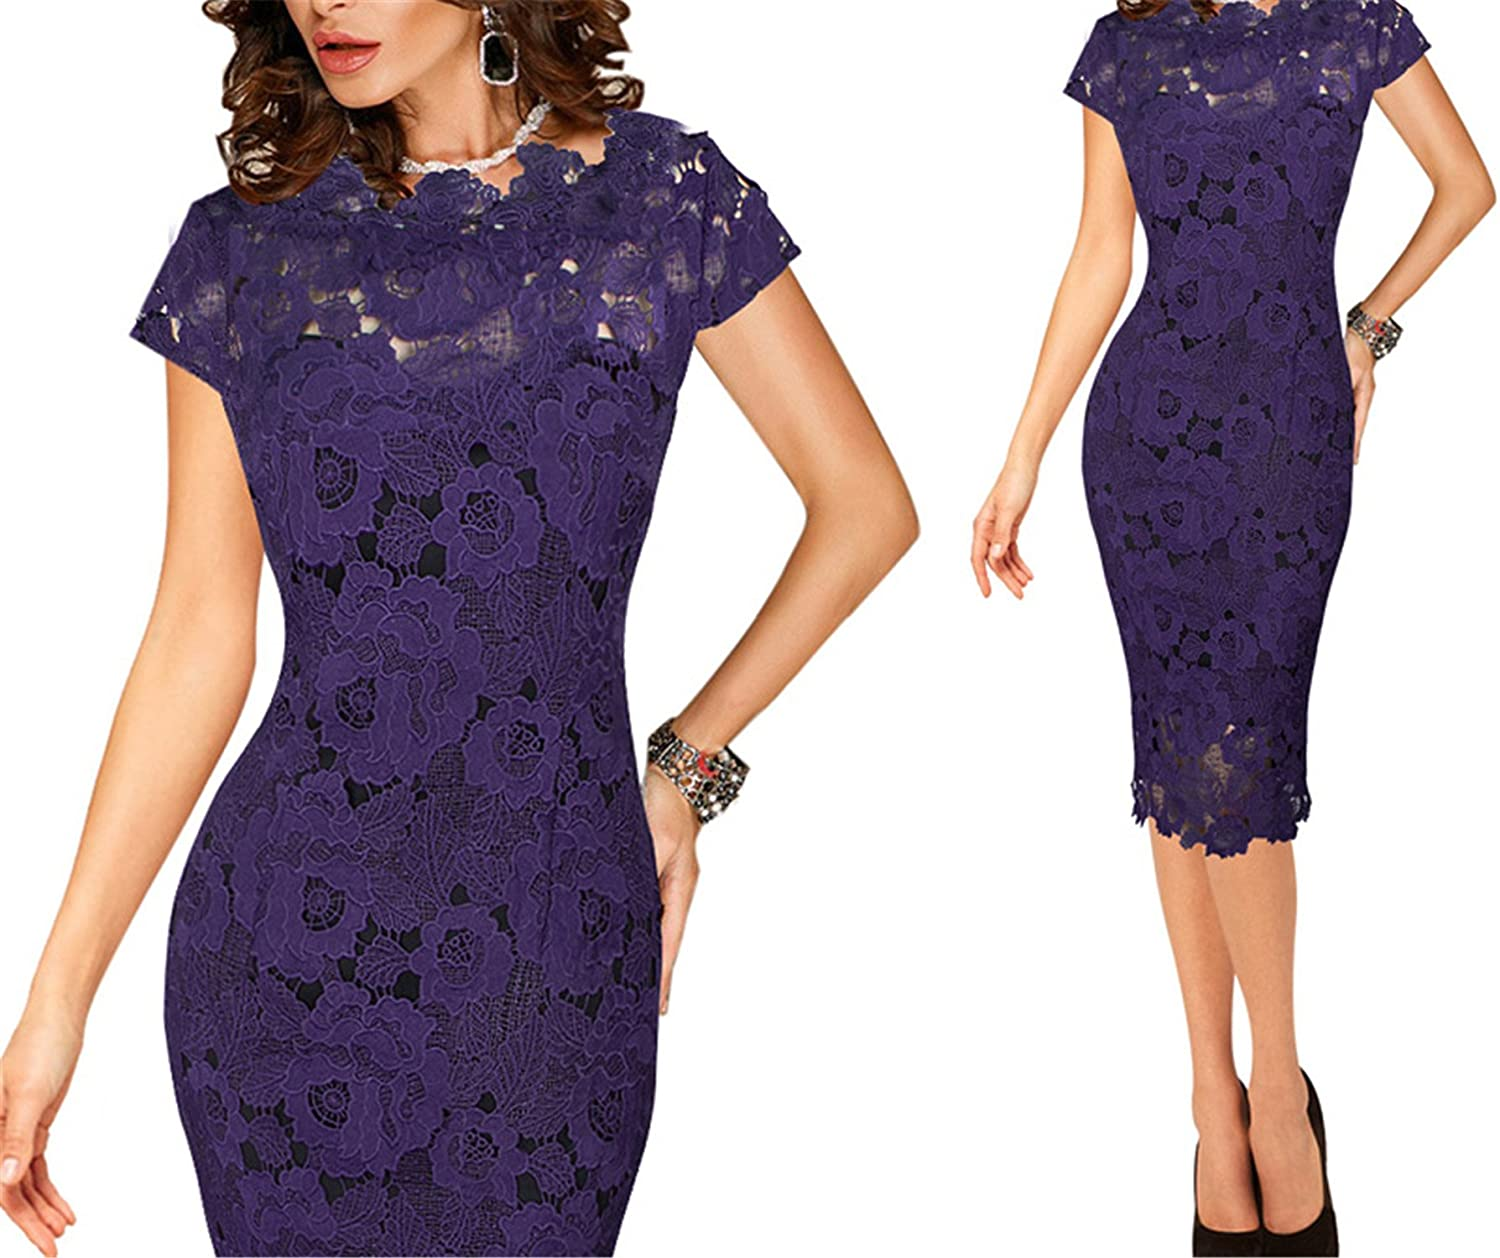 Purple Ivan Johns Dresses Elegant Sexy Crochet Hollow Out Pinup Party Evening Special Occasion Sheath Fitted Vestidos Dress 4272